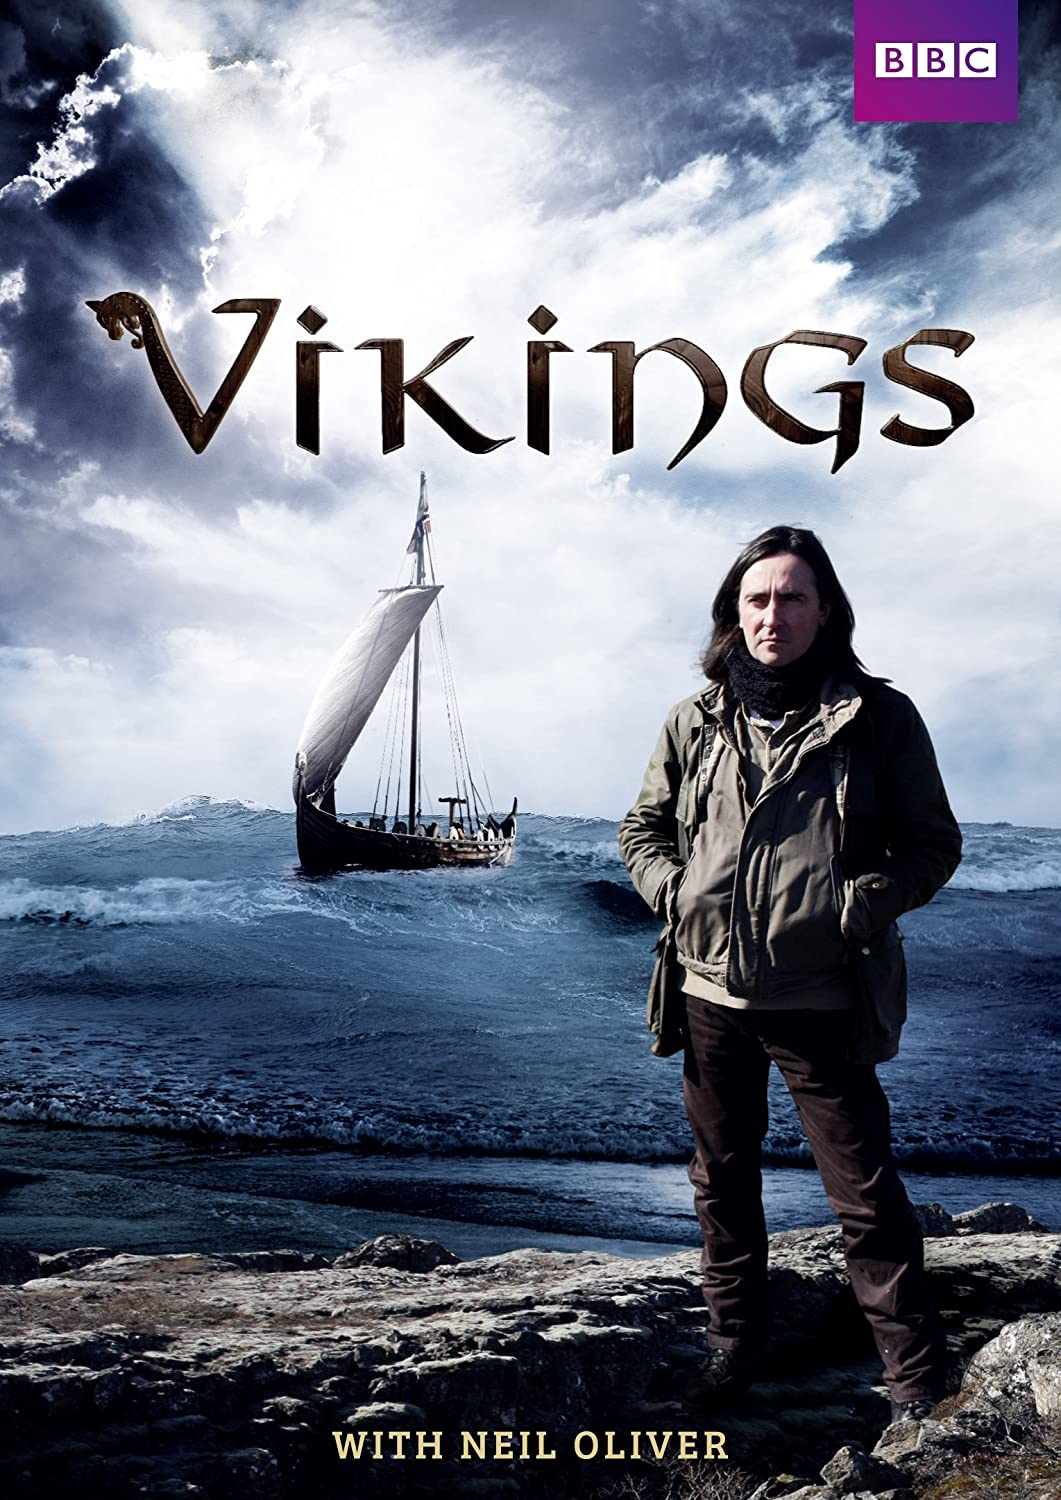 Vikings [DVD]: Amazon.co.uk: Neil Oliver, Neil Oliver, Cameron ...